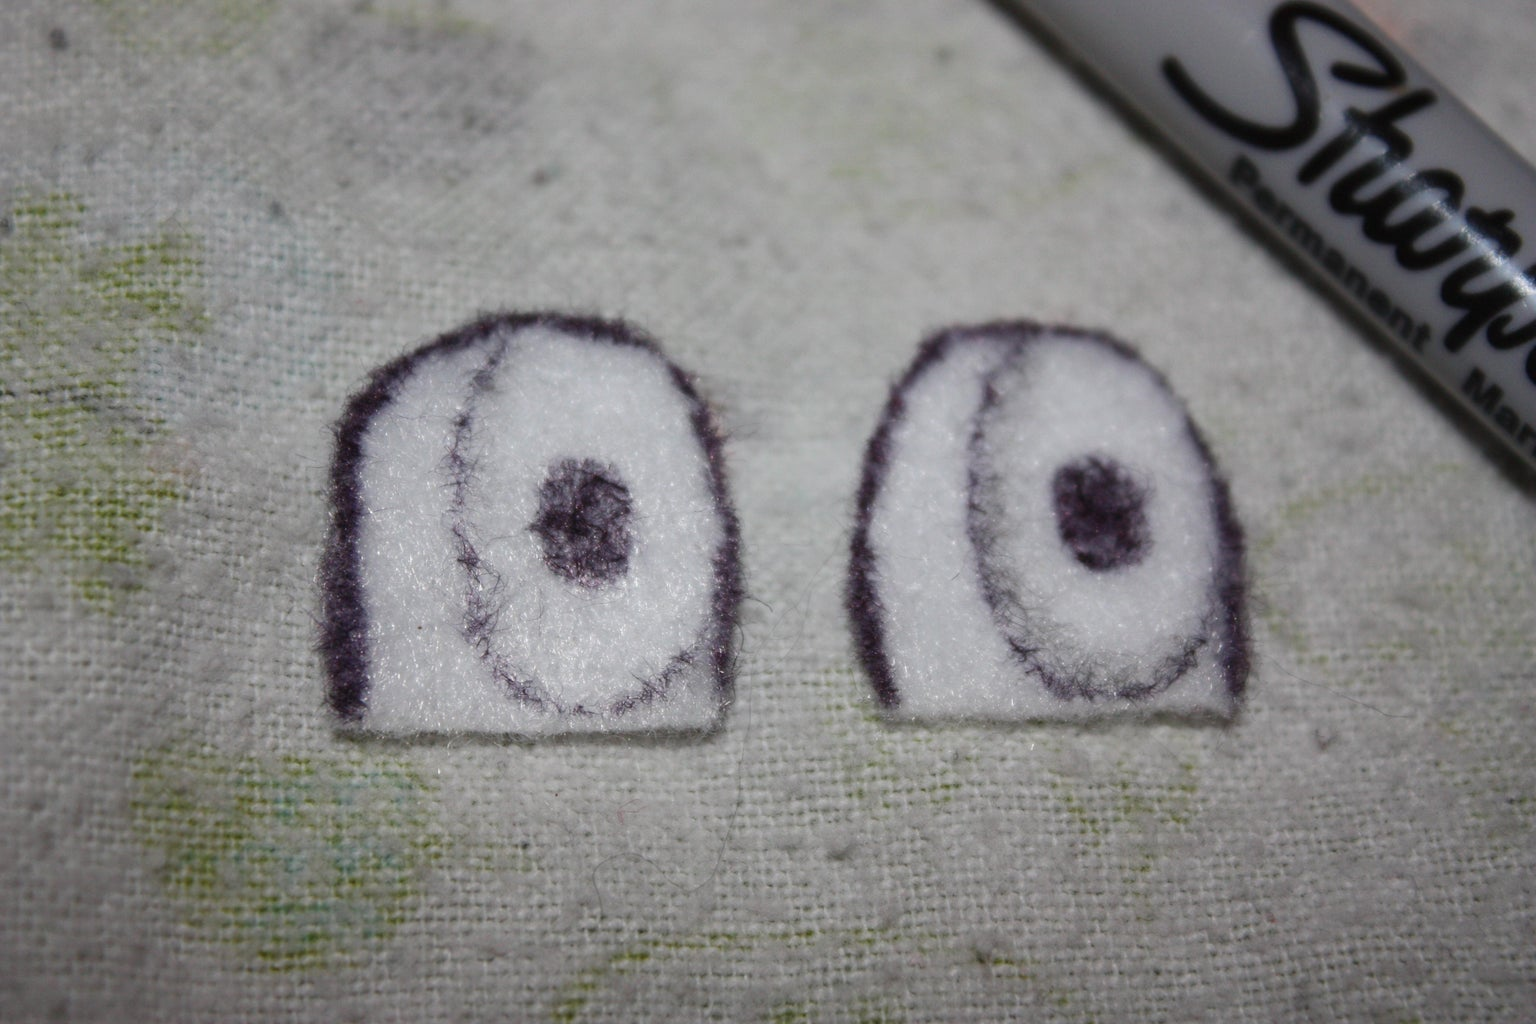 Step 5: Eyes and Nose